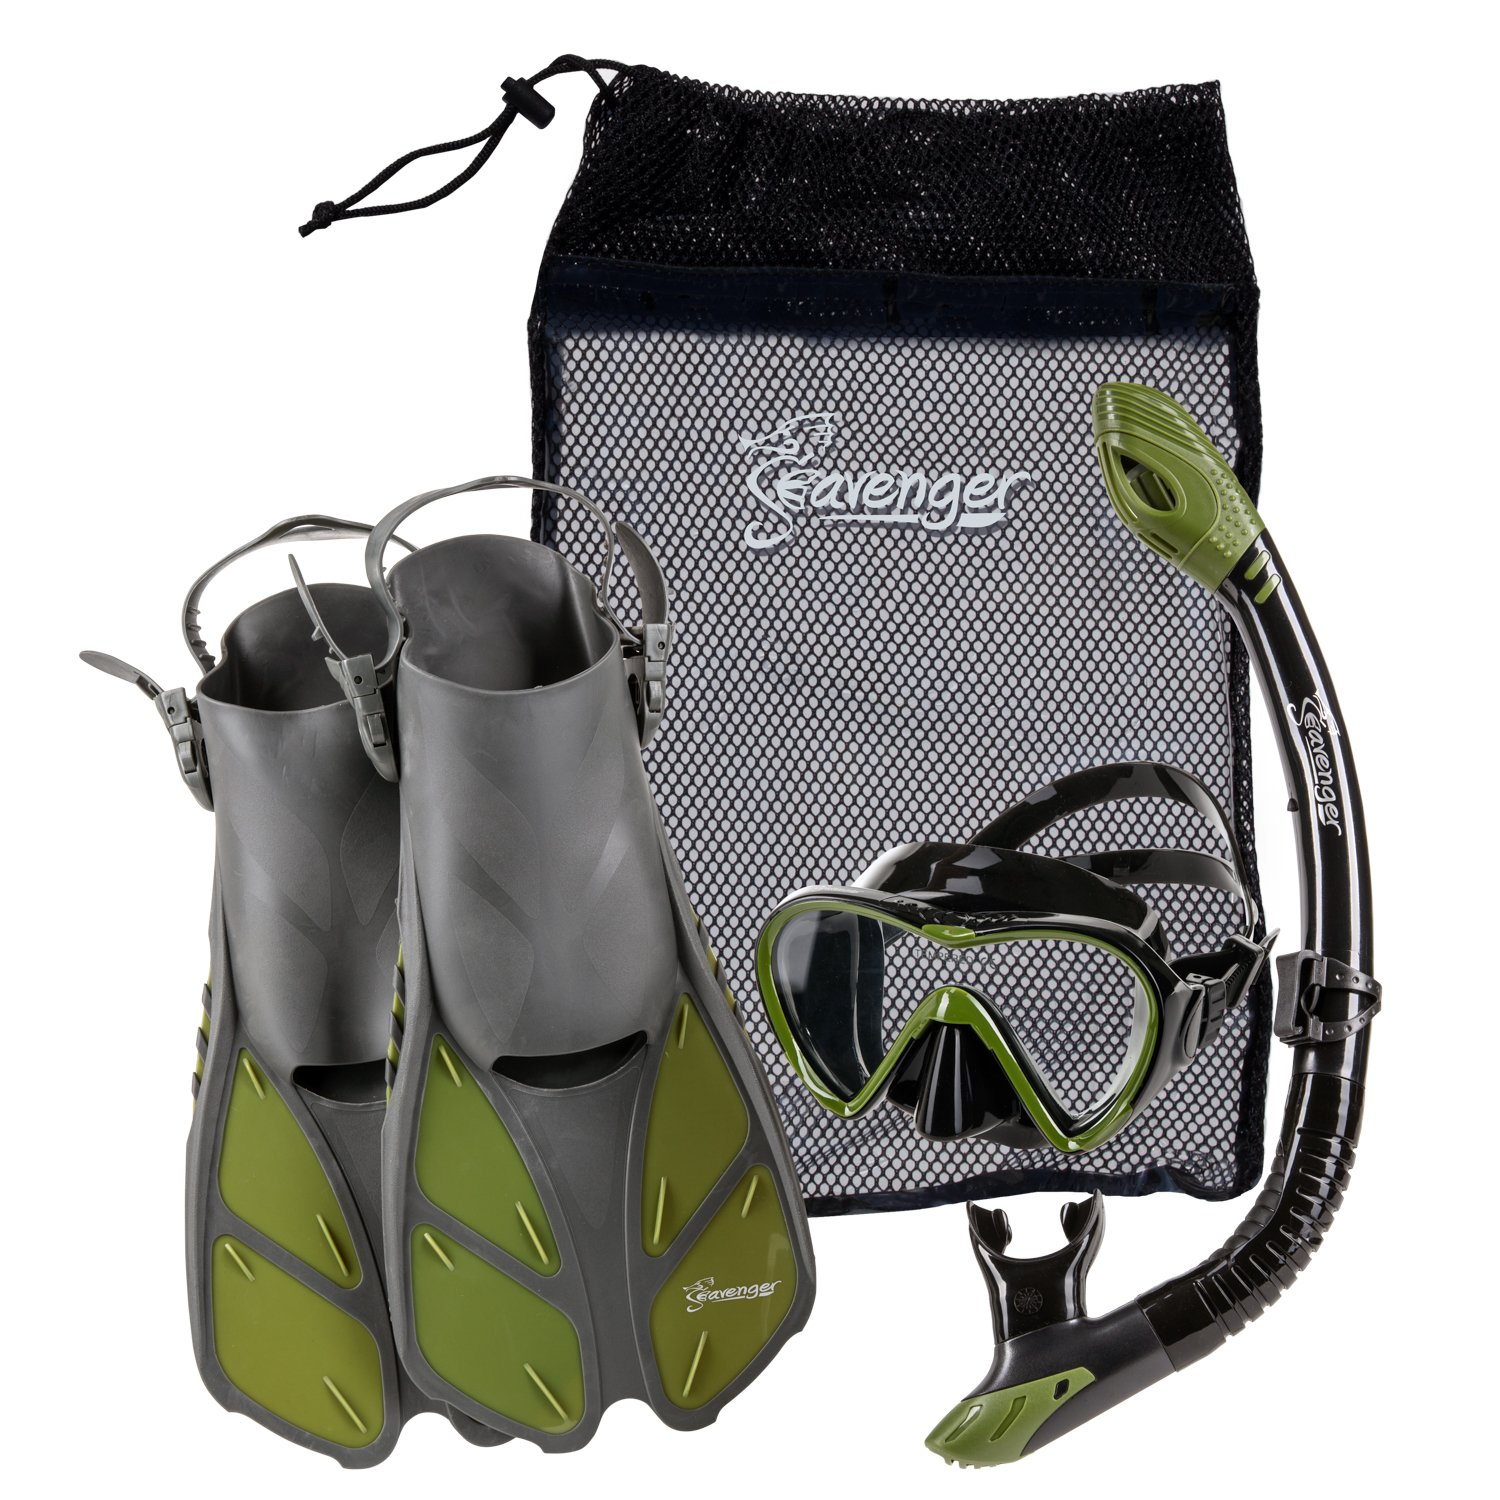 Seavenger Diving Dry Top Snorkel Set with Trek Fin, Single Lens Mask and Gear Bag, L/XL - Size 9 to 13, Gray/Black Silicon/Green by Seavenger